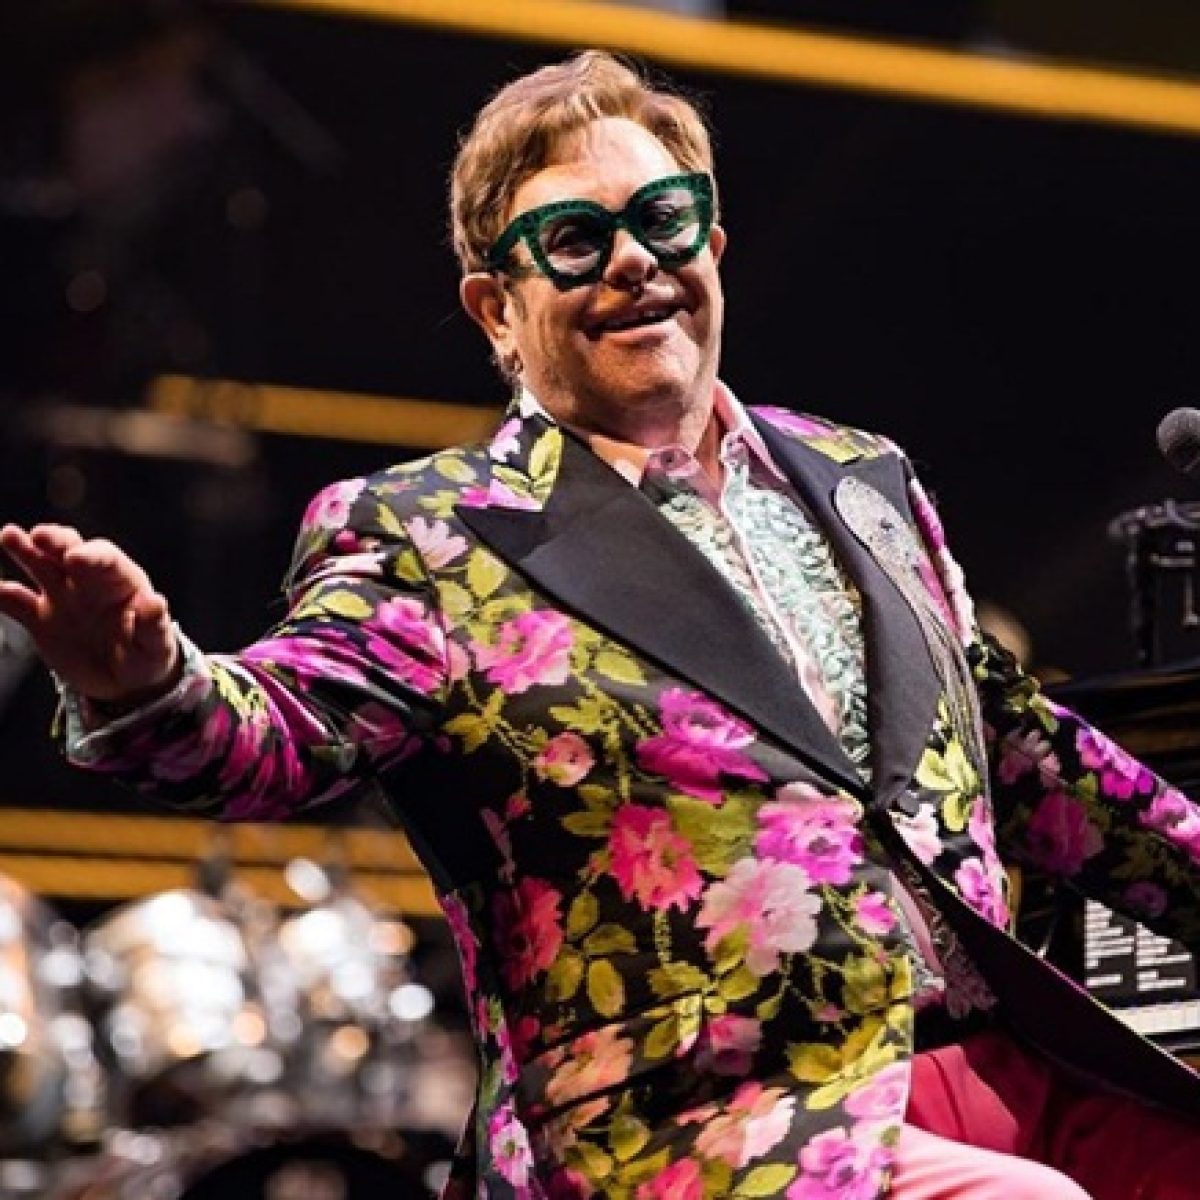 Elton John reveals the time he wore diapers during a performance